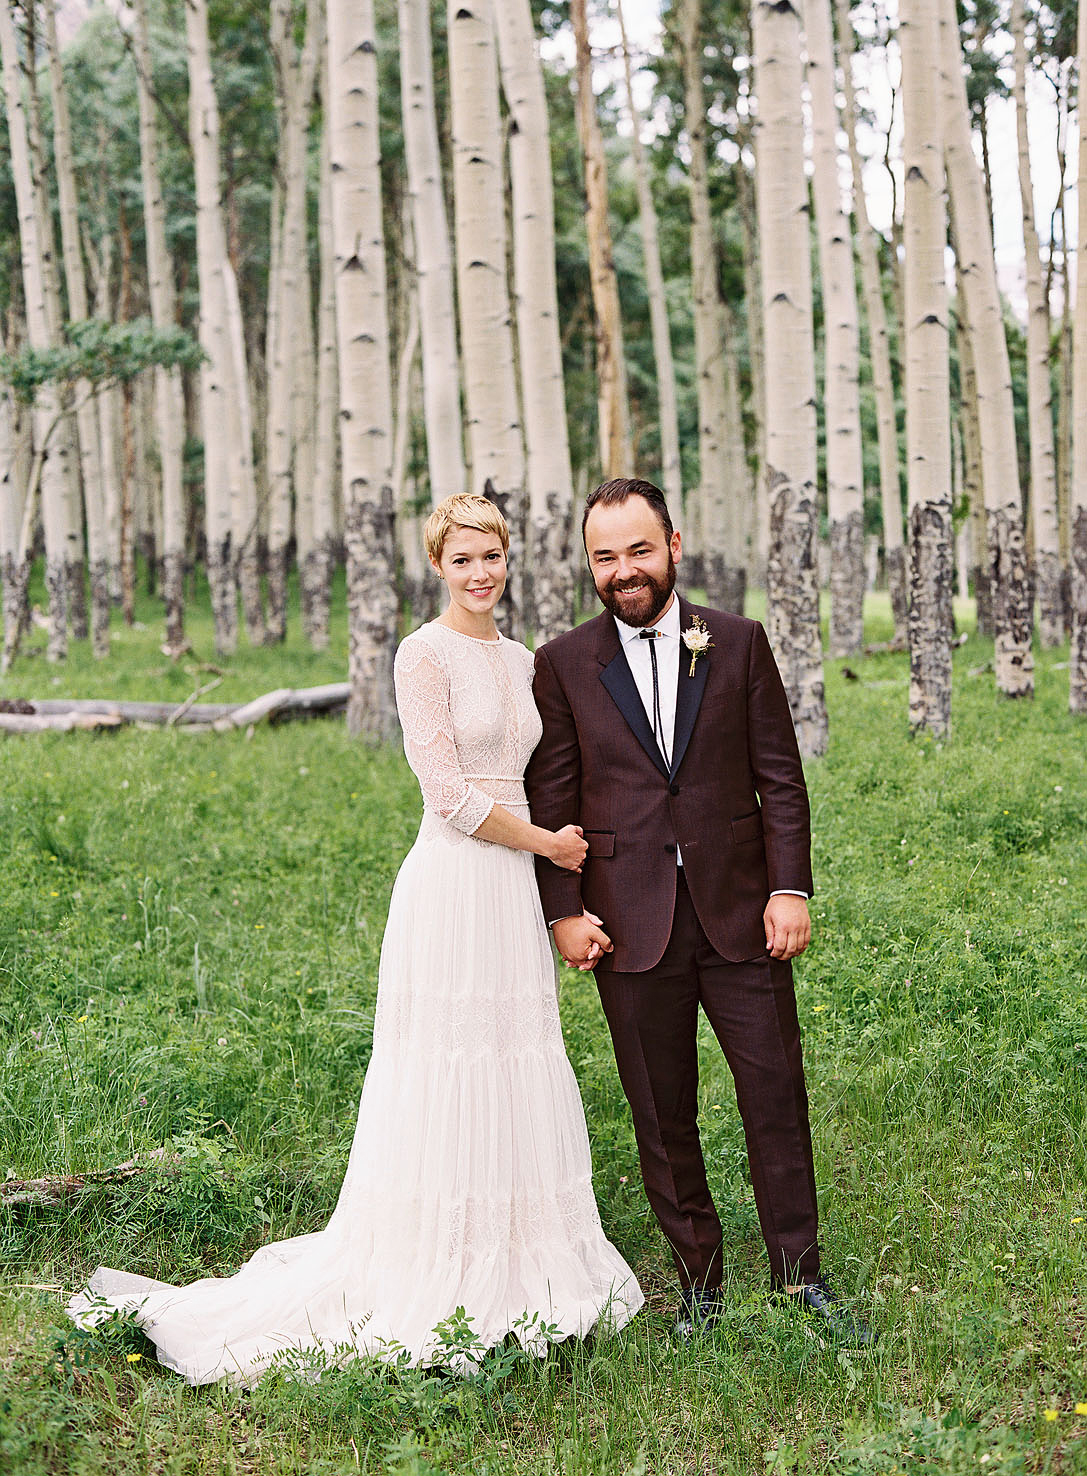 21 Grooms Who Wore Colorful Wedding Suits